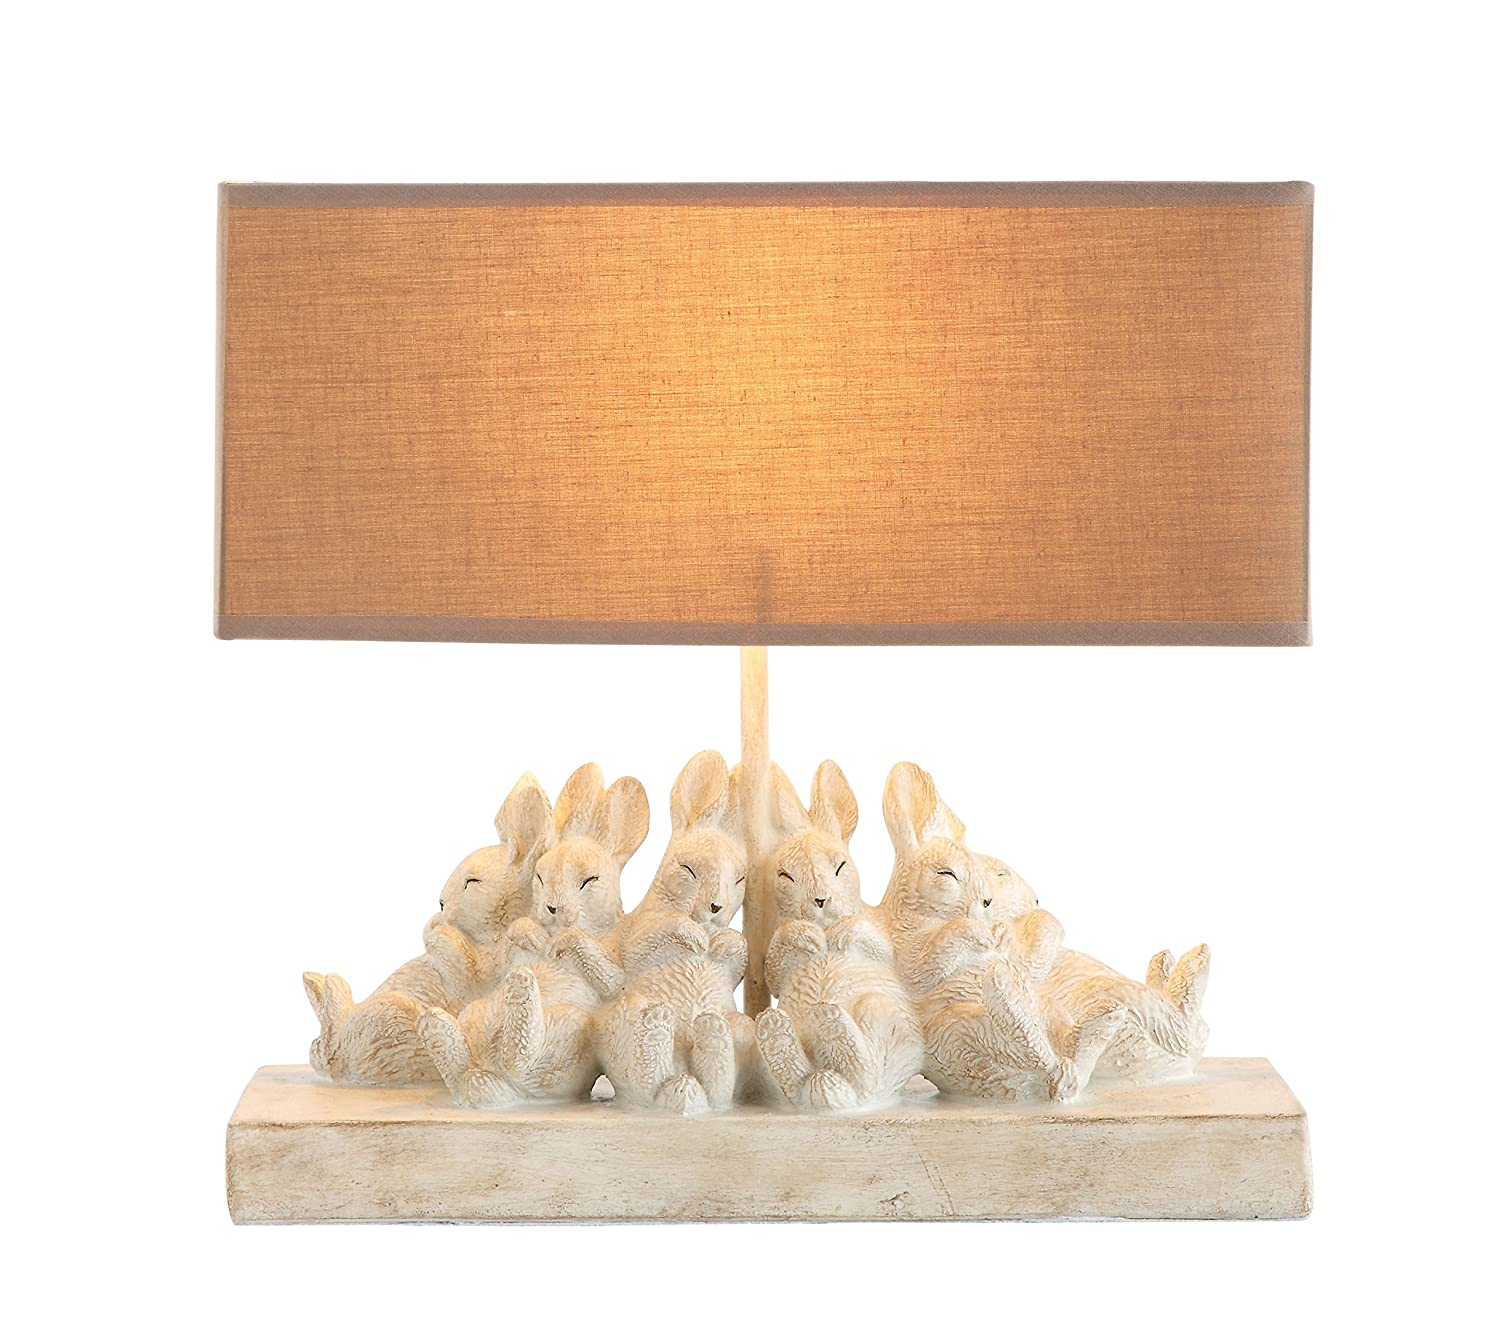 "Creative Co-op Whitewashed Rabbit Table Lamp with Sand-Colored Linen Shade, 14"" L x 5.5"" W x 13"" H,"